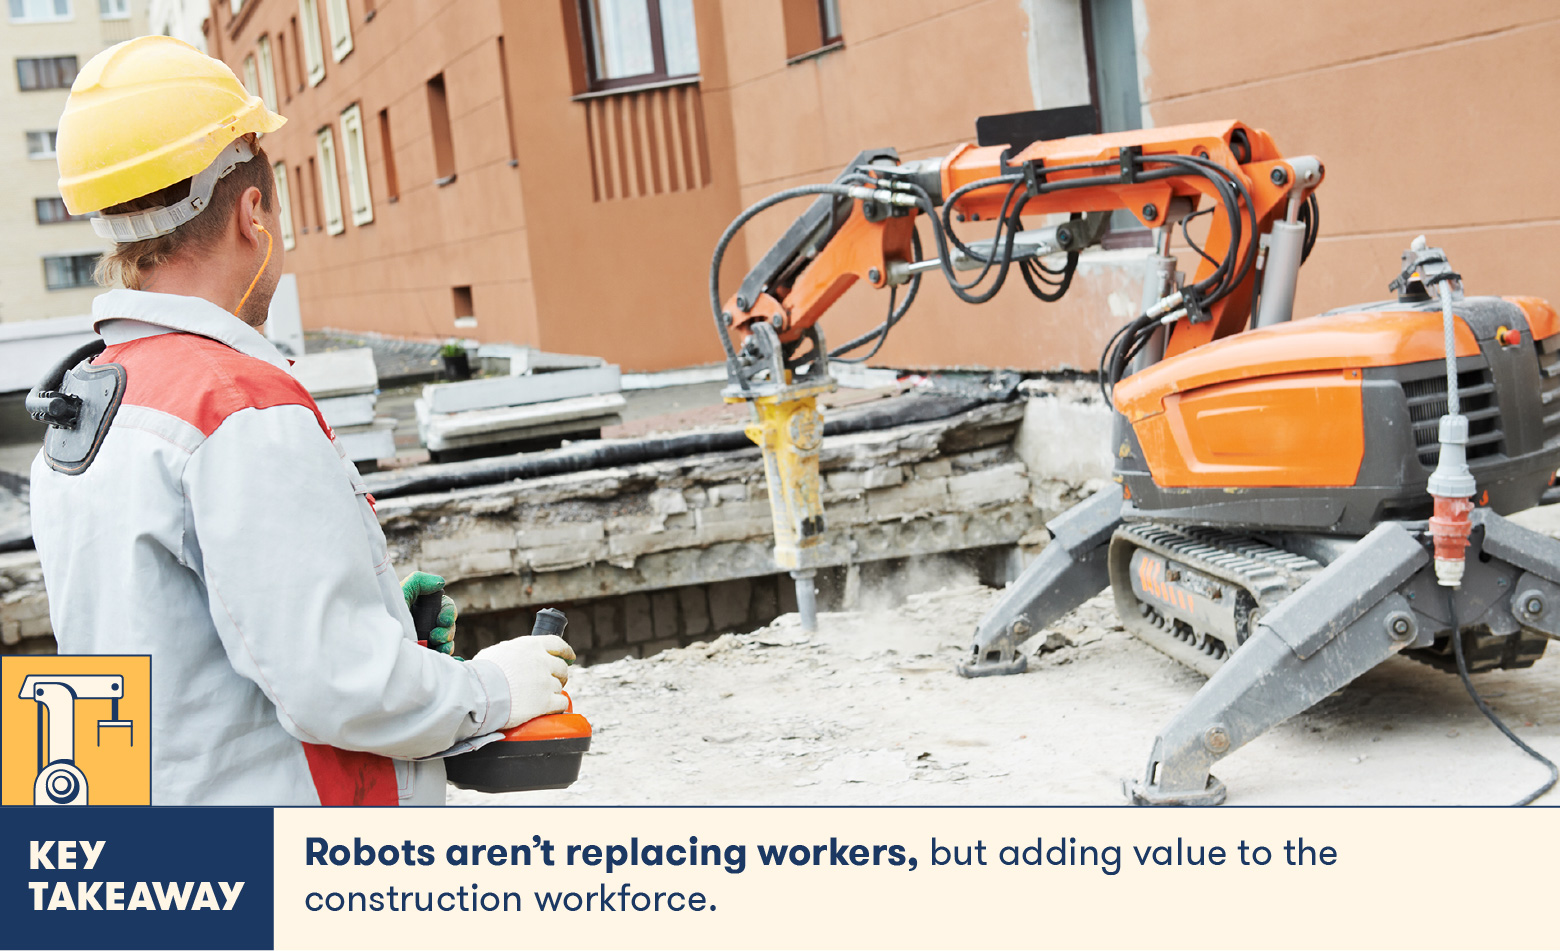 Construction robots are supporting the construction industry